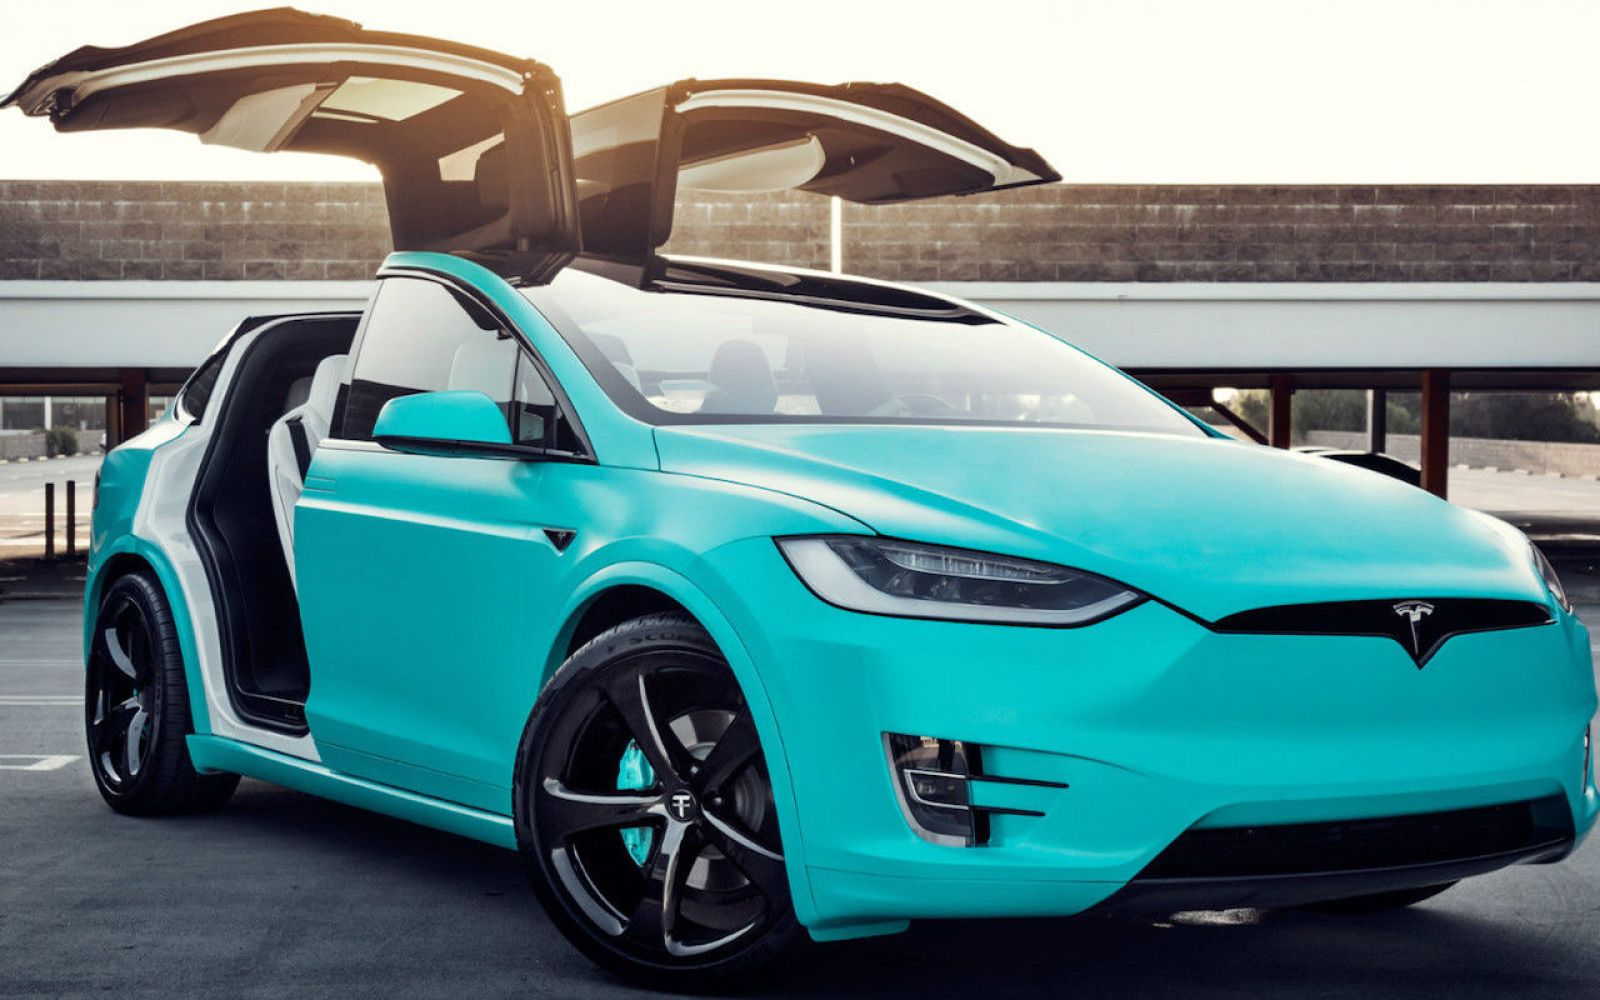 Tesla P90d For Sale >> For sale: Tesla Model X P90D, Tiffany robin's egg blue edition $188K | Electrek